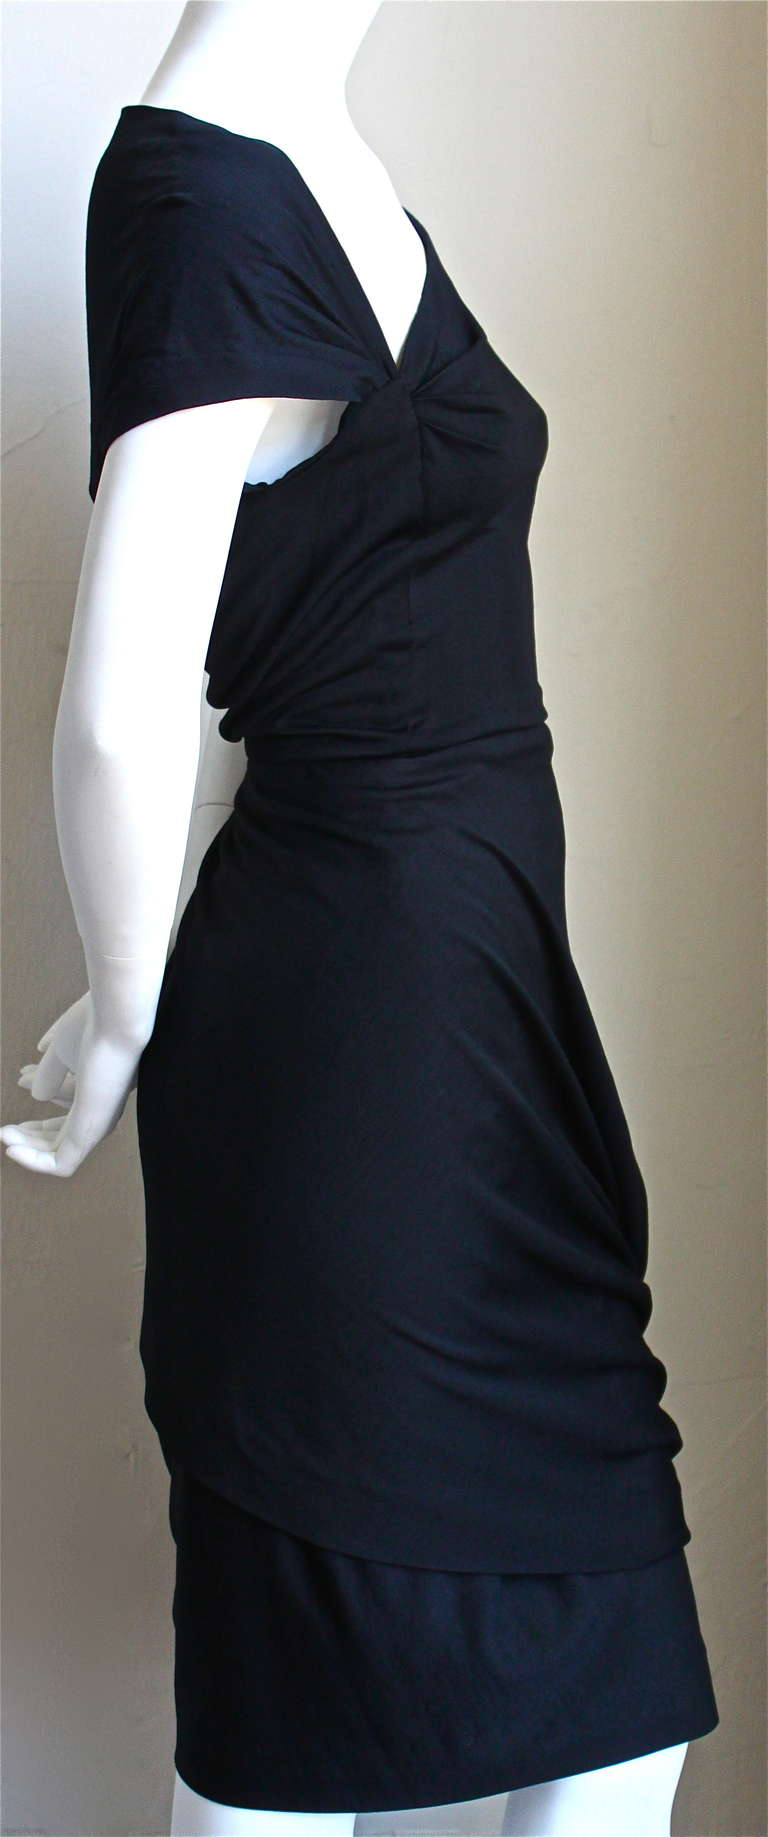 1950's PEDRO RODRIGUEZ haute couture asymmetrical draped wool jersey dress 3